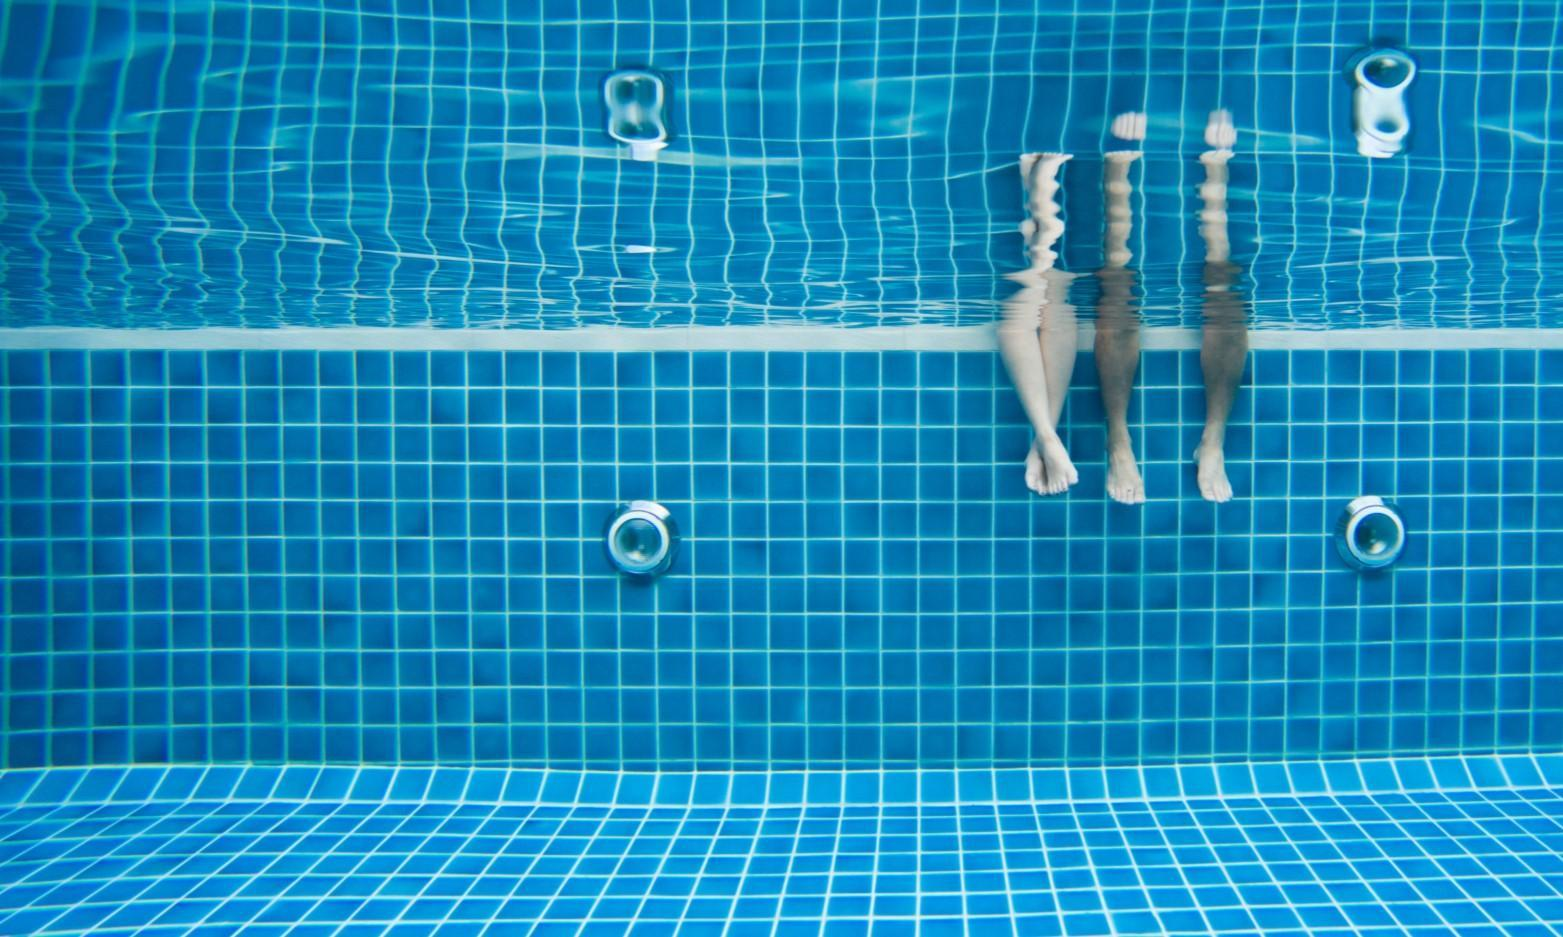 Cardigan Swimming Pool